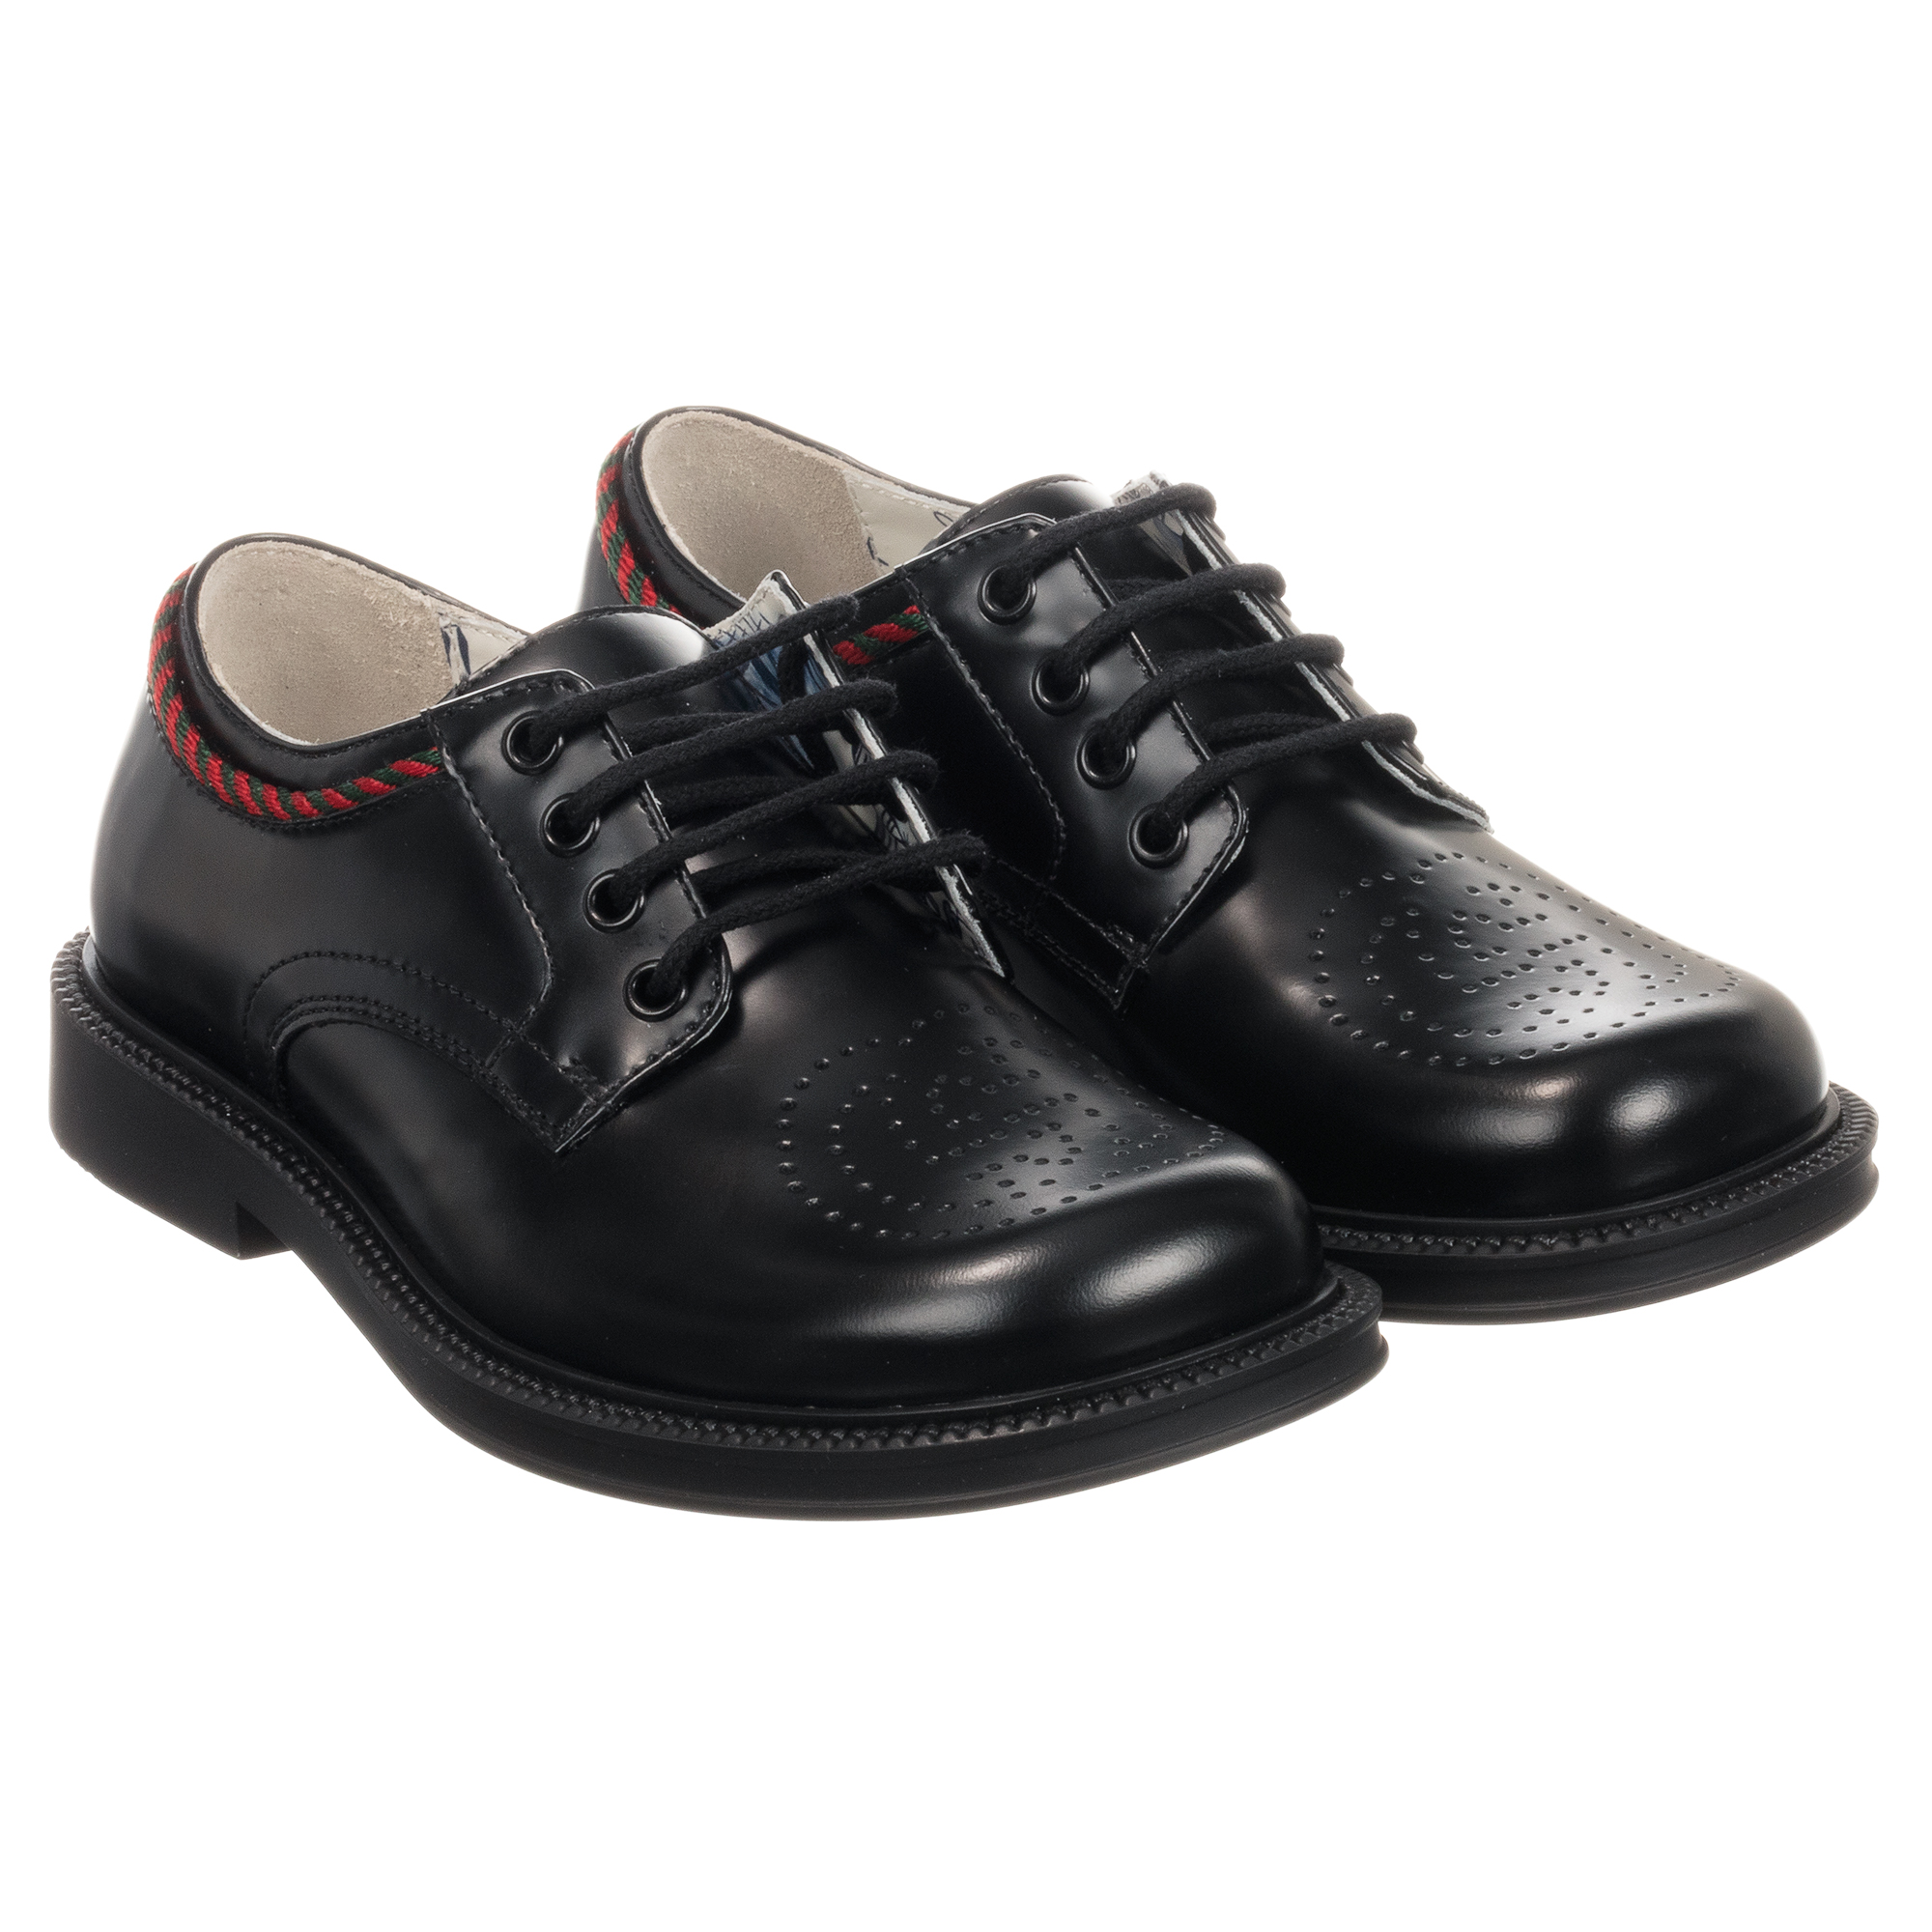 Gucci - Black Leather Lace-Up Shoes